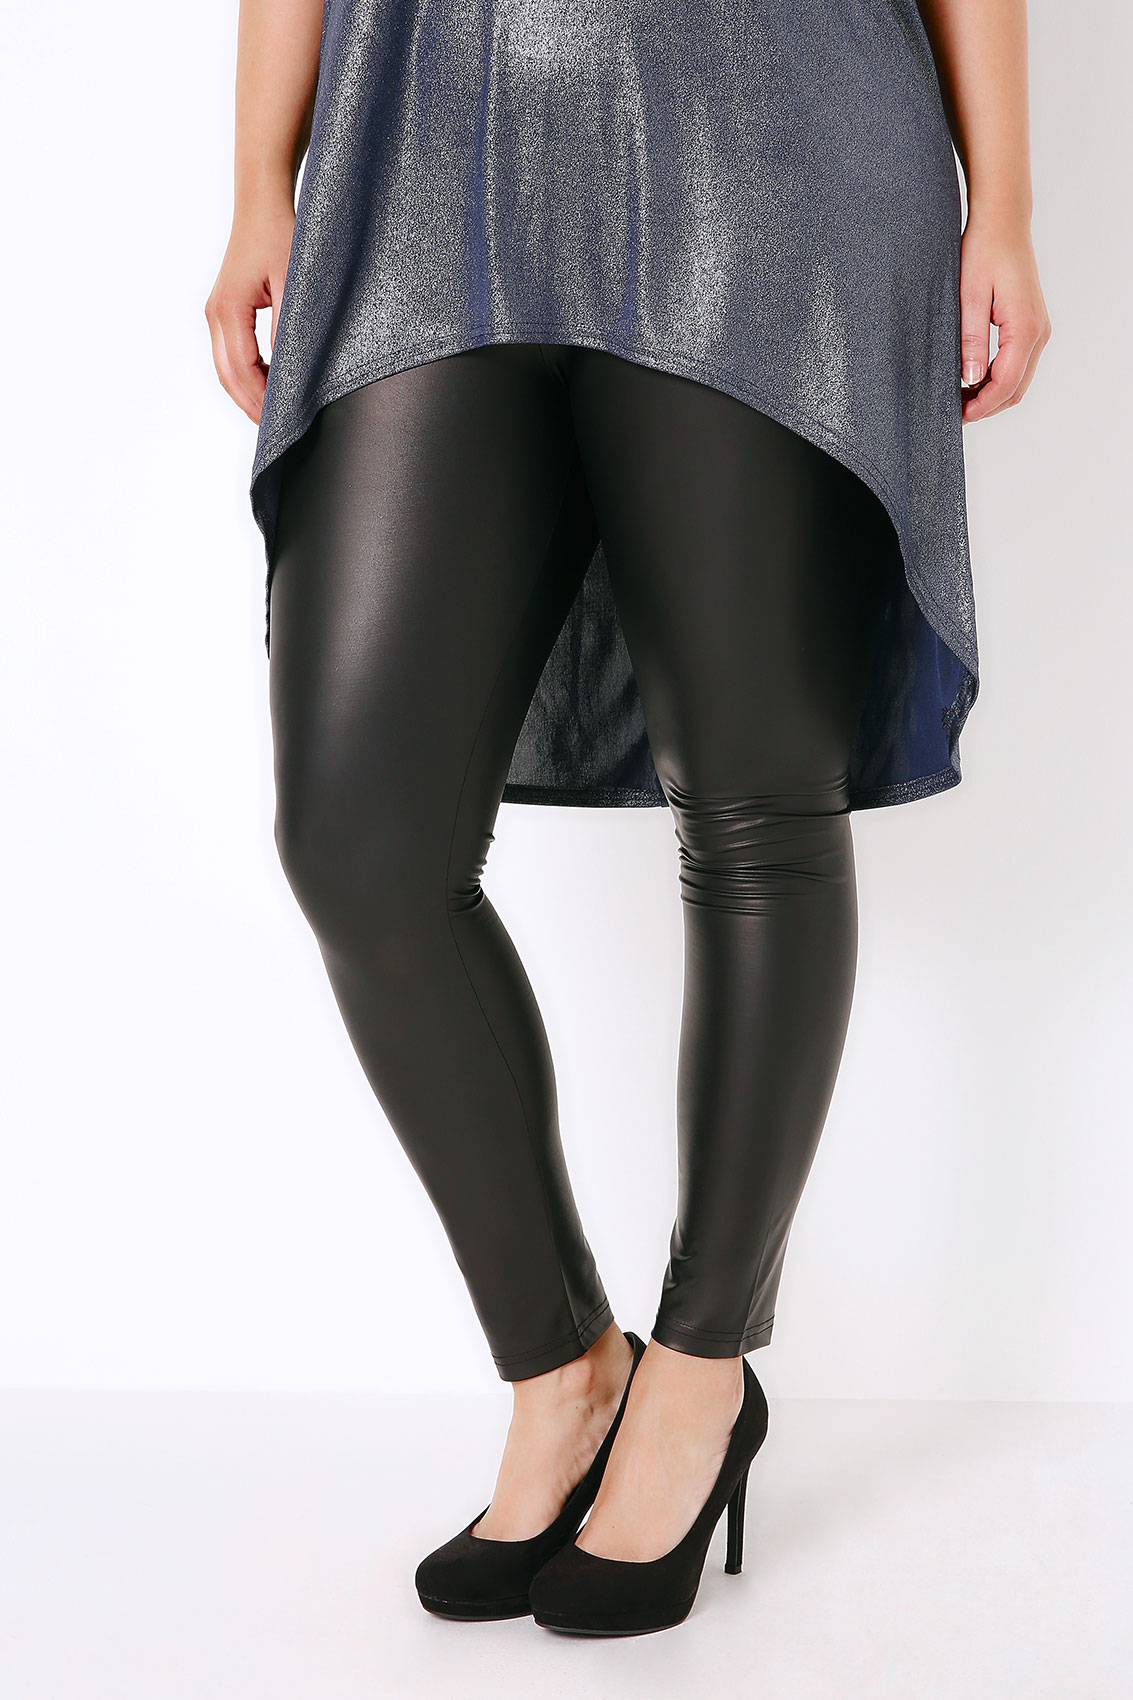 Black Wet Look Leggings With Elasticated Waist, Plus Size 16 to 36